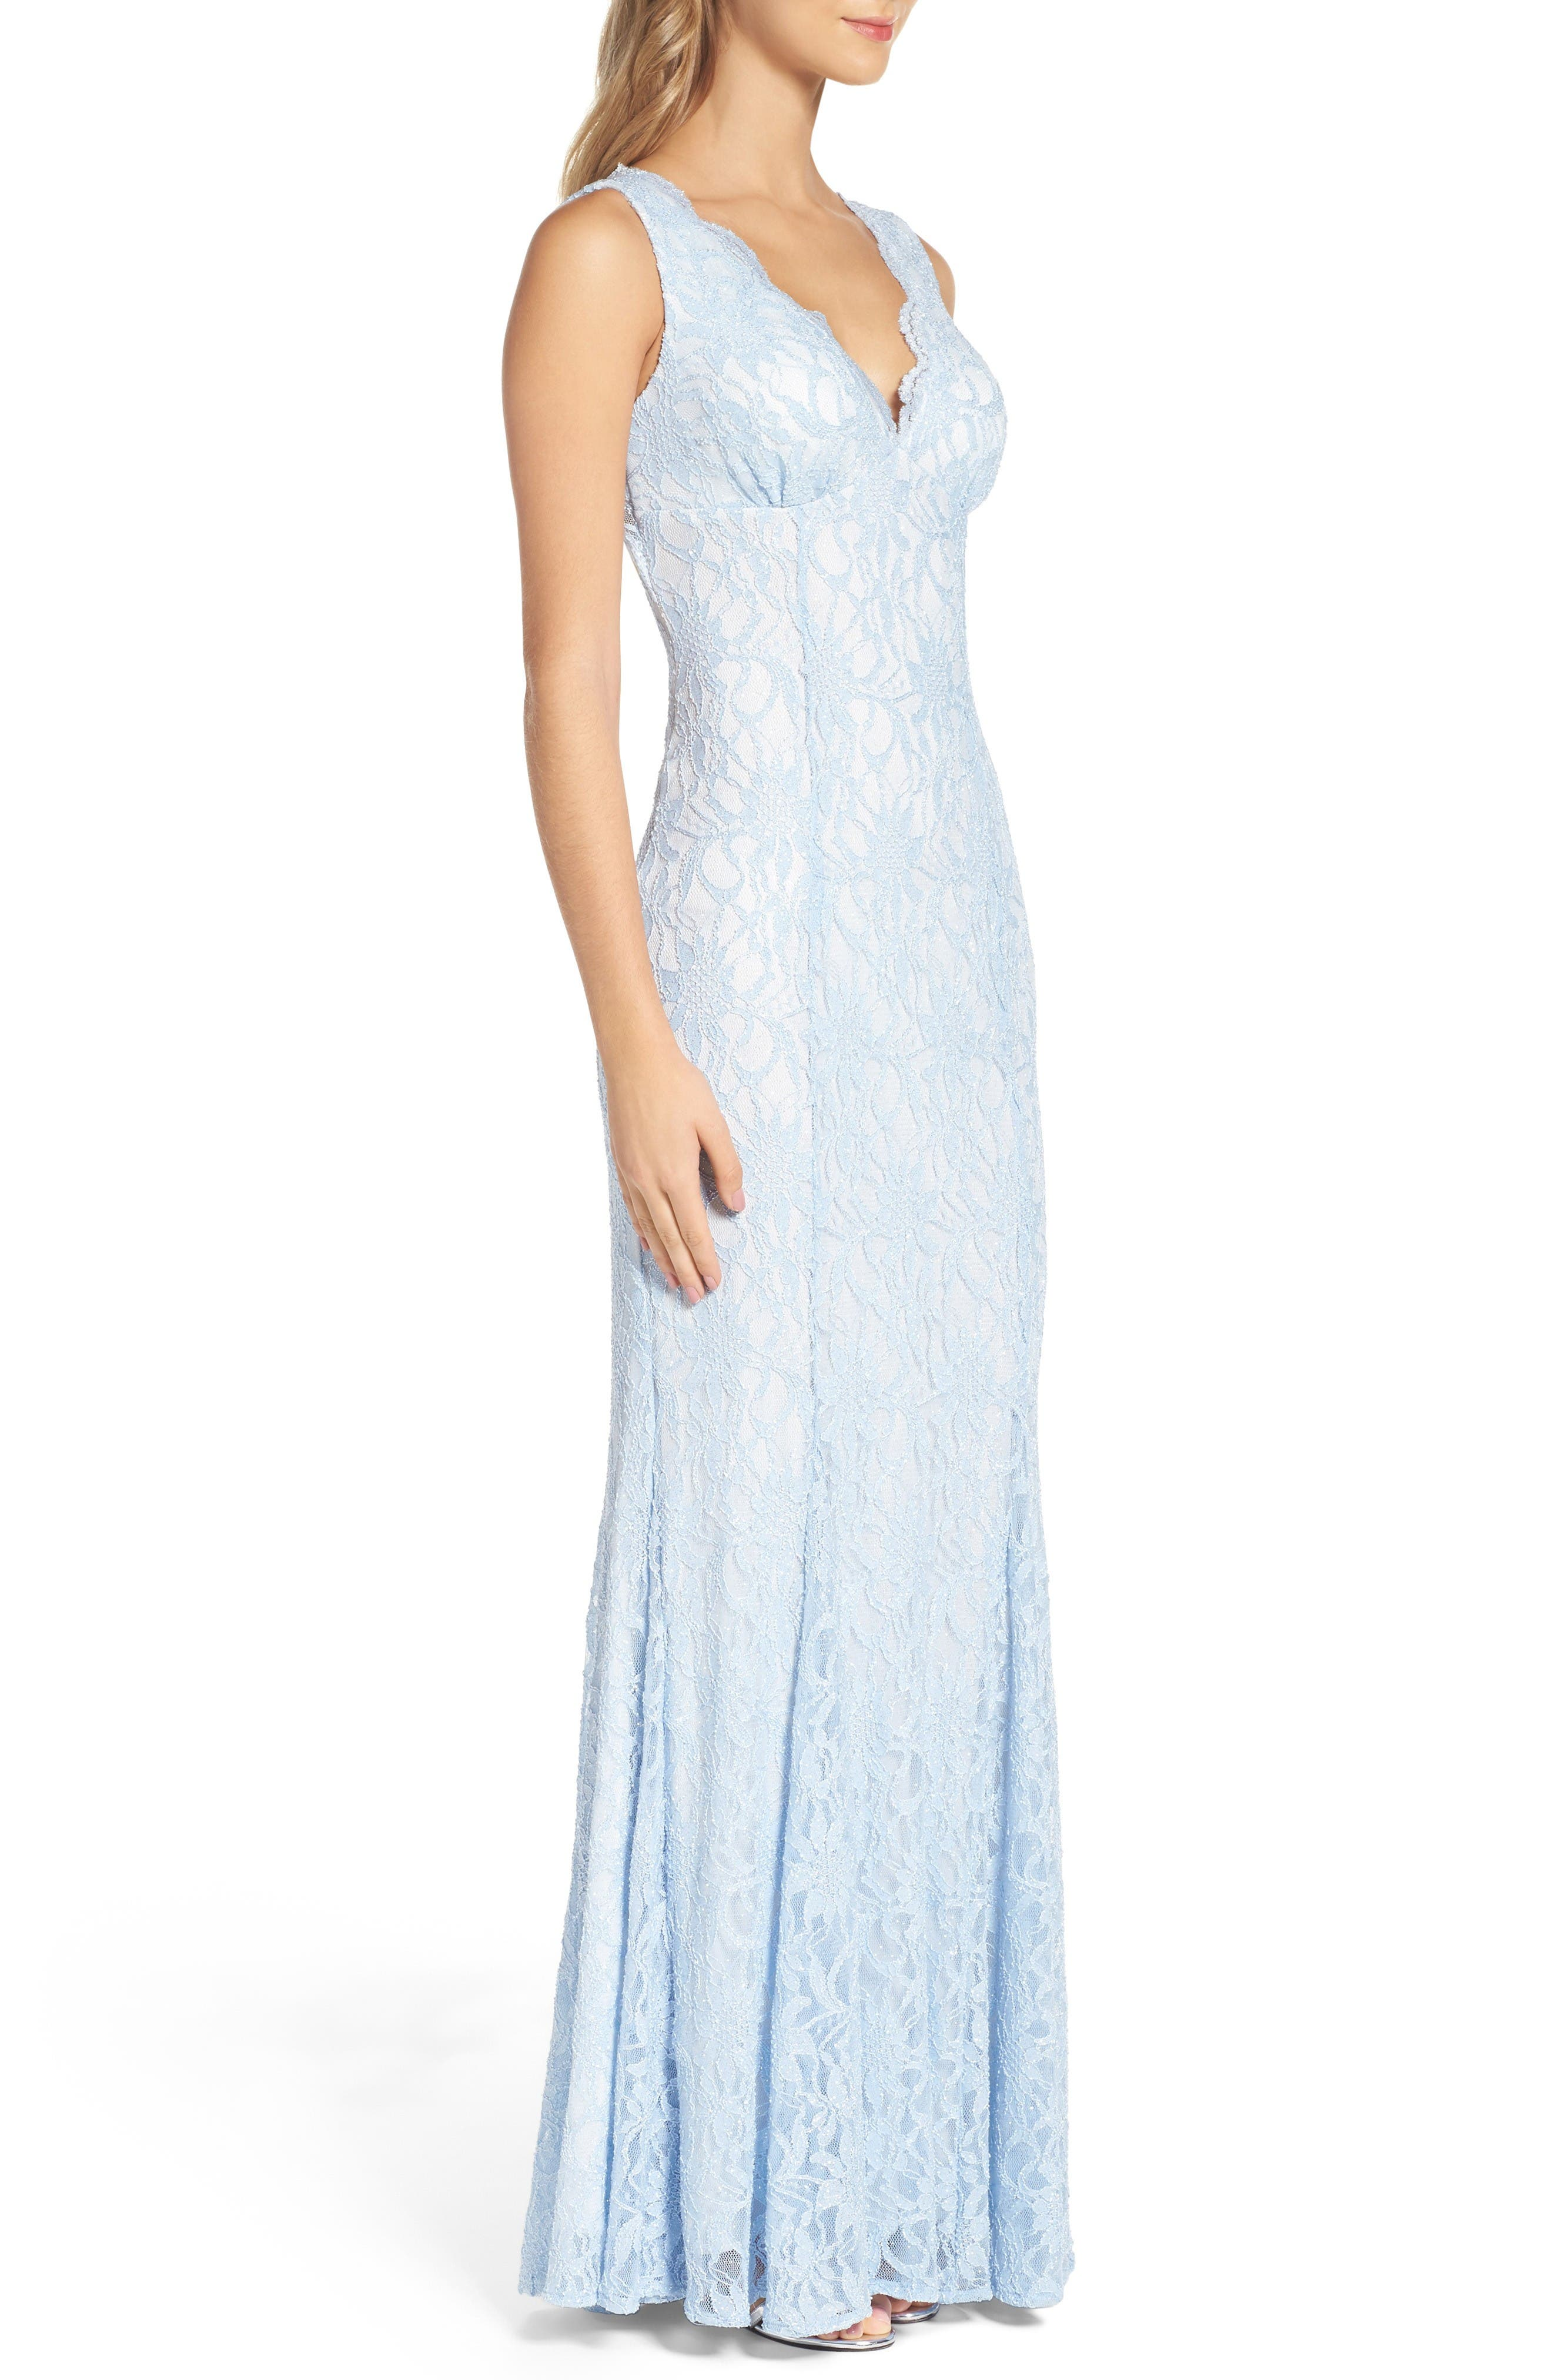 Glitter Lace Gown,                             Alternate thumbnail 3, color,                             Ice Blue/ Ivory